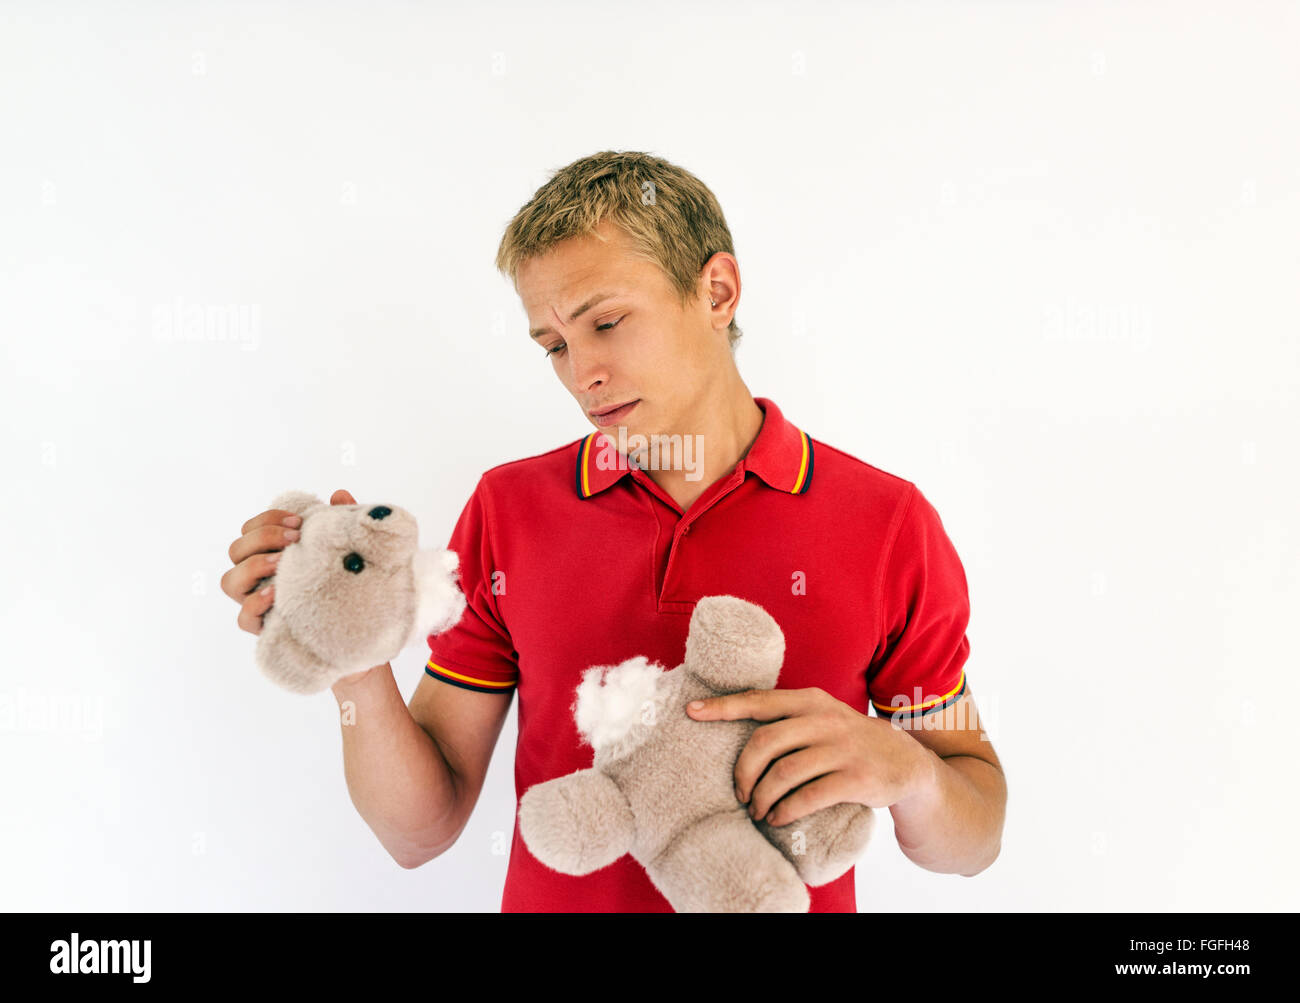 Man holding the head and body of a cute toy teddy bear looking sad - Stock Image